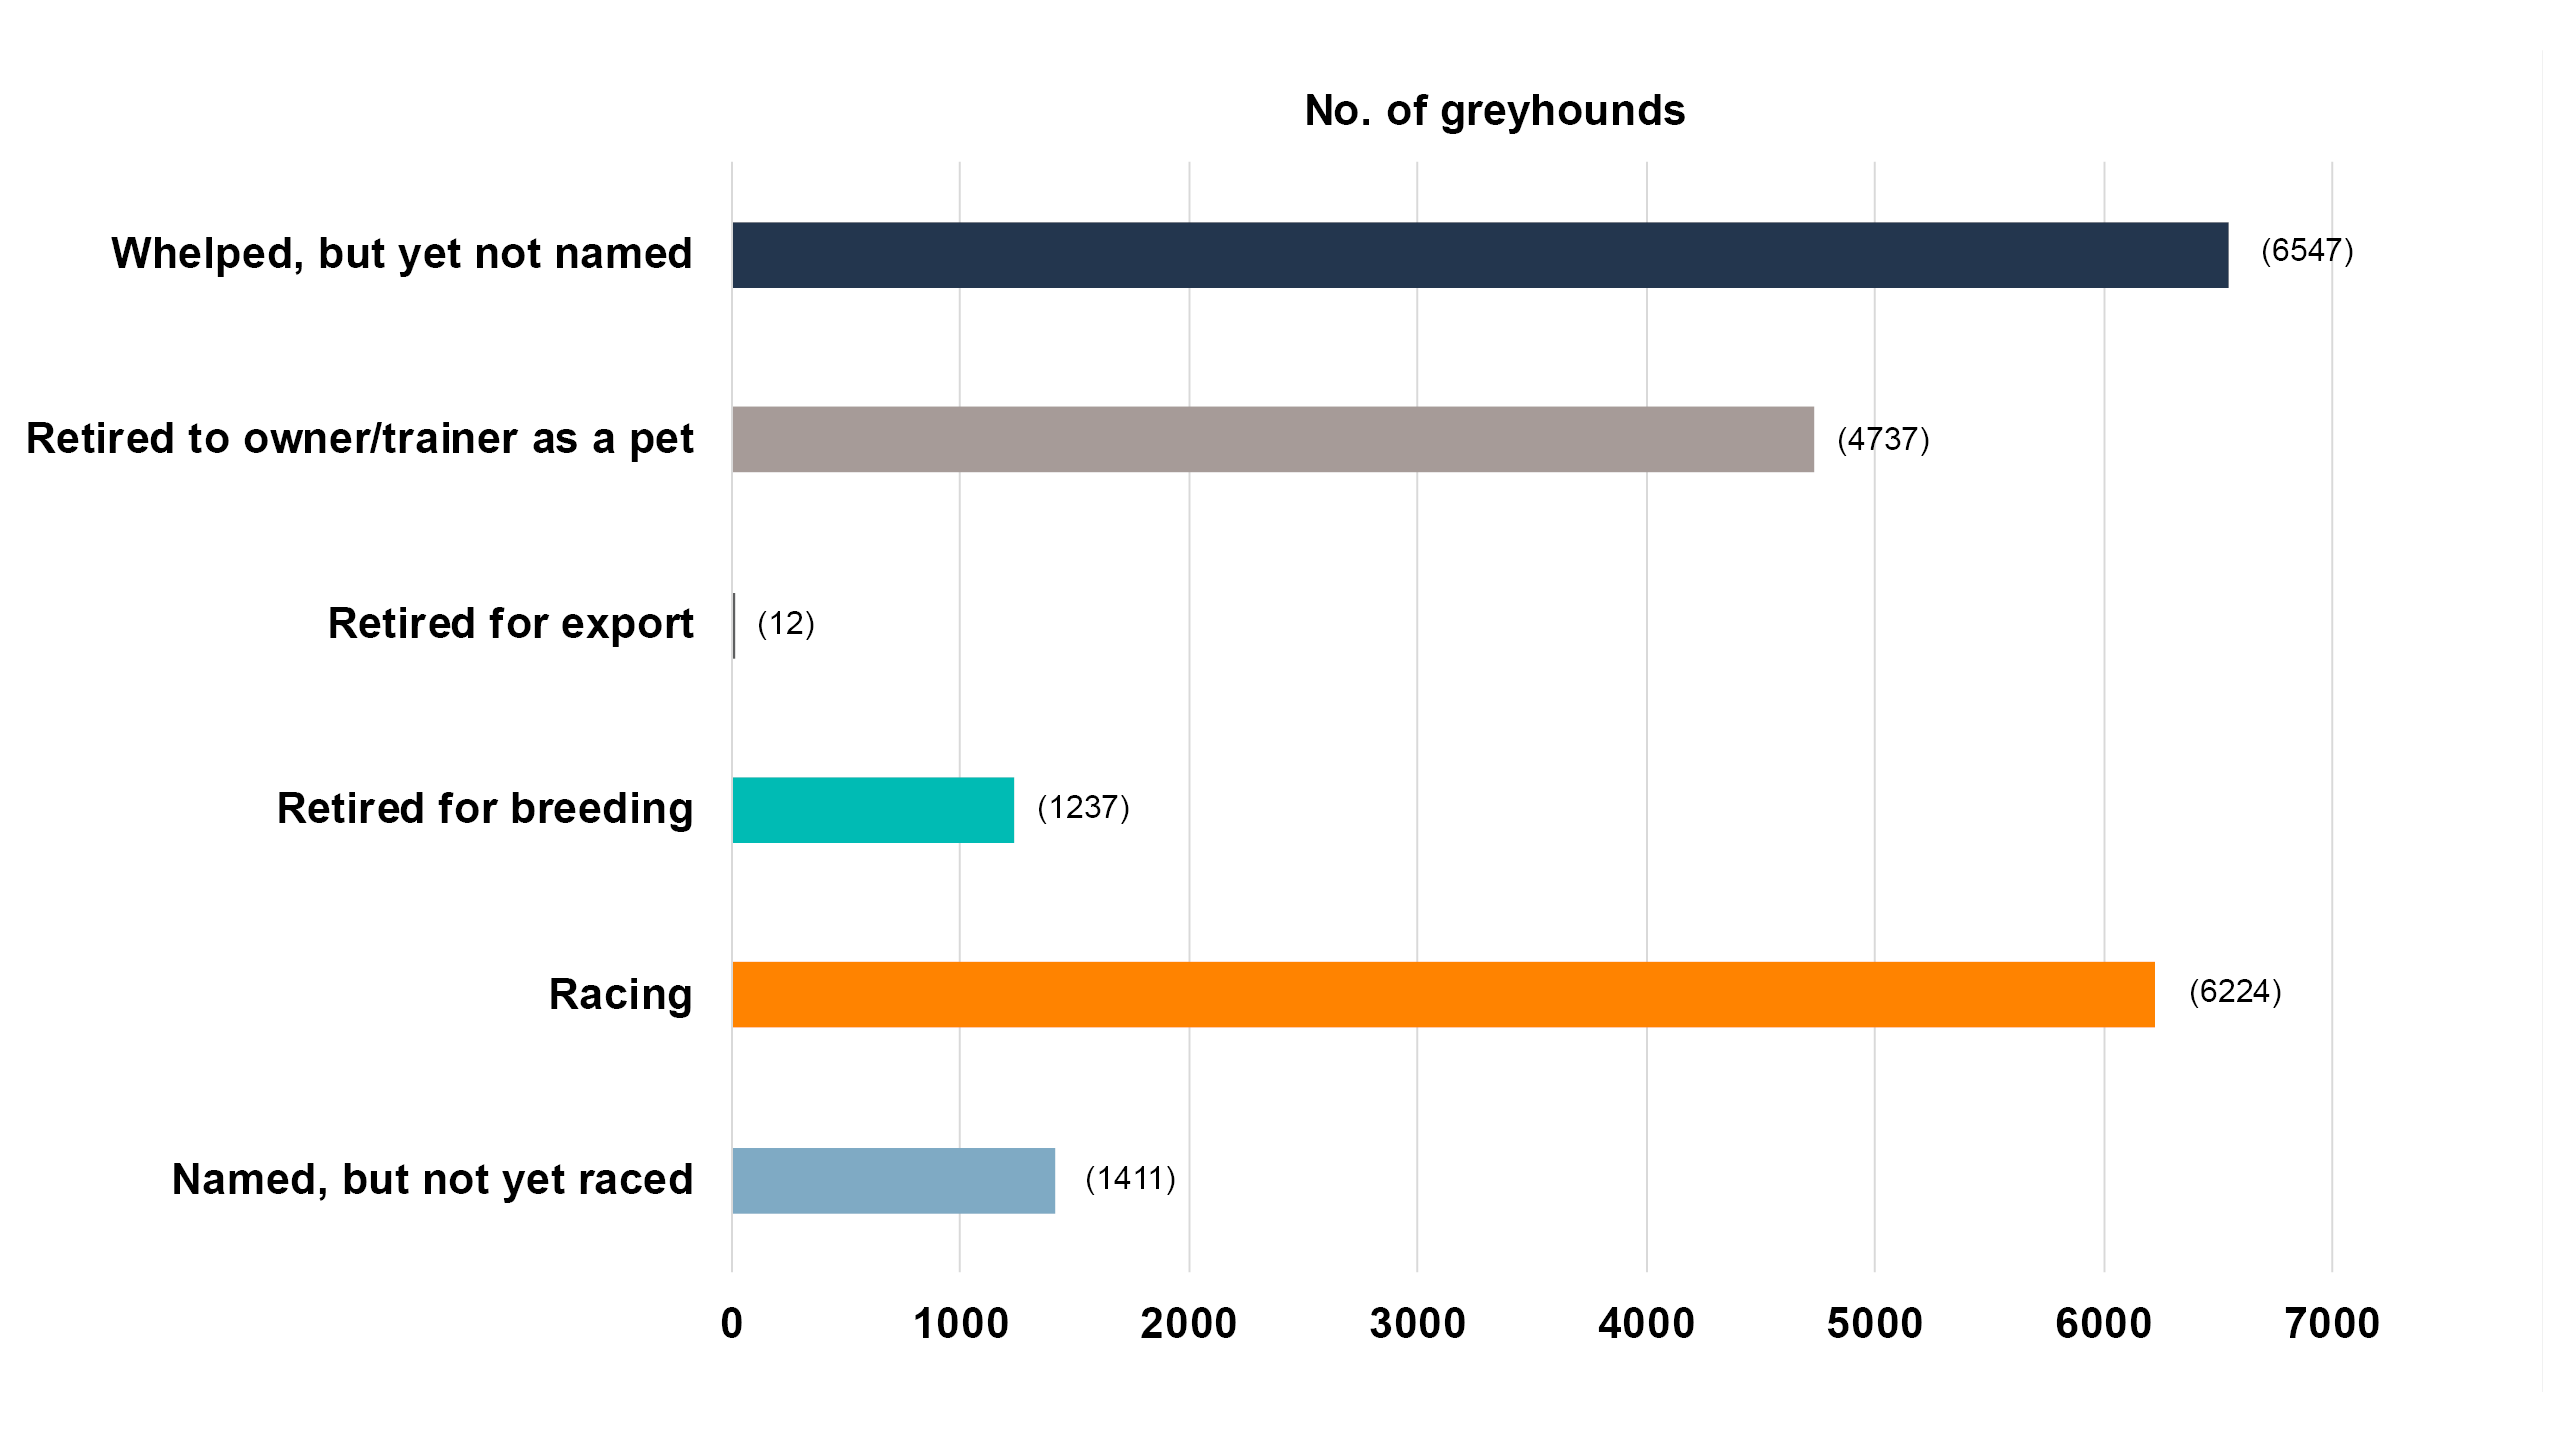 As at November 2020 there are approximately 20168 registered greyhounds